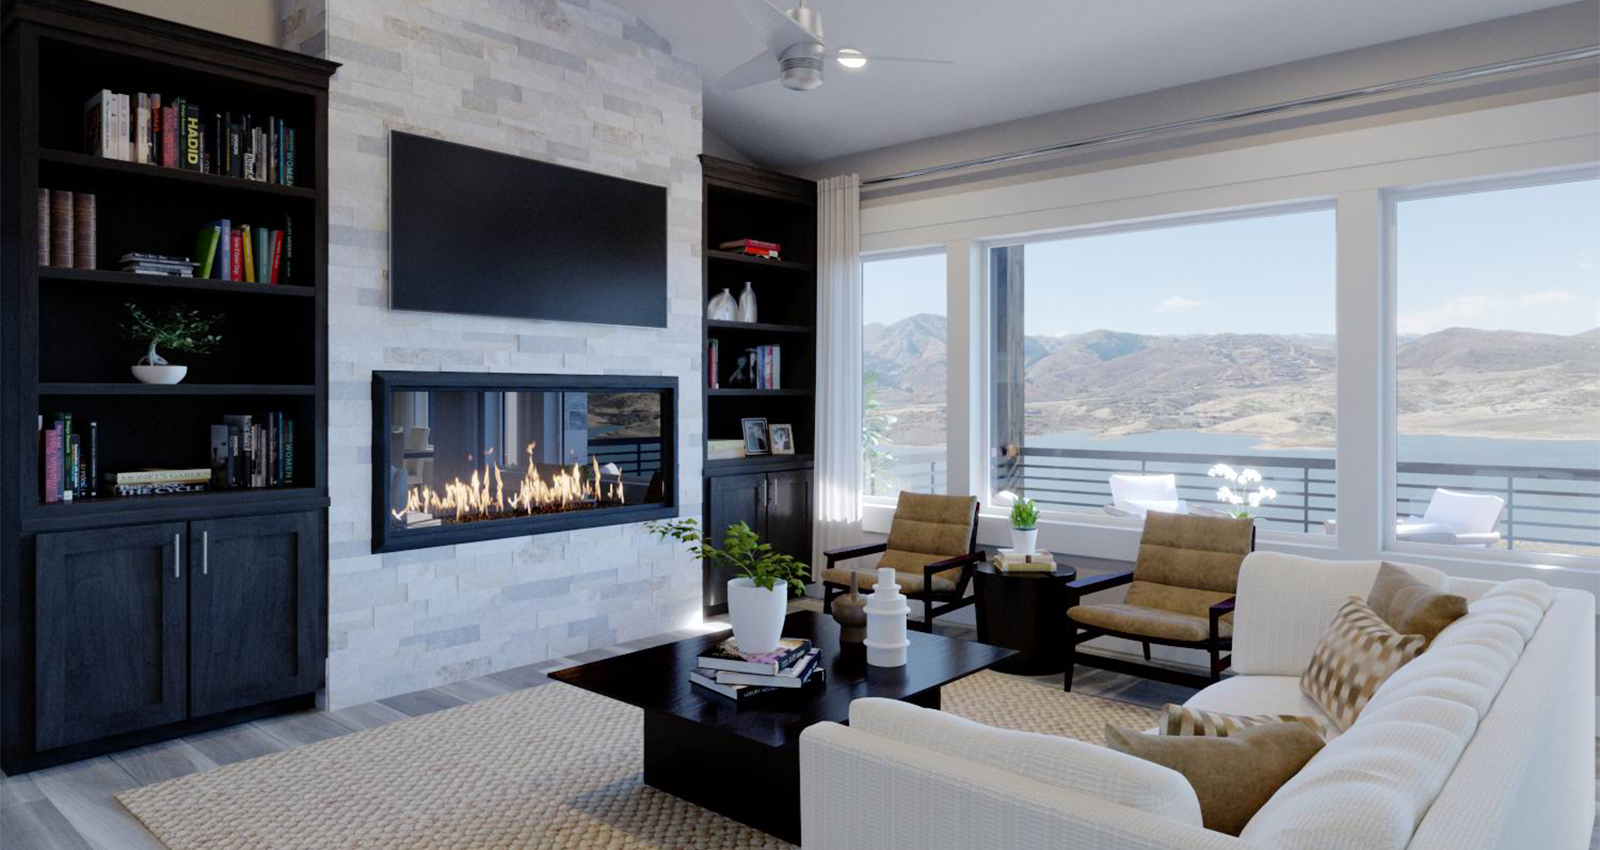 den in luxury townhome with mountain view